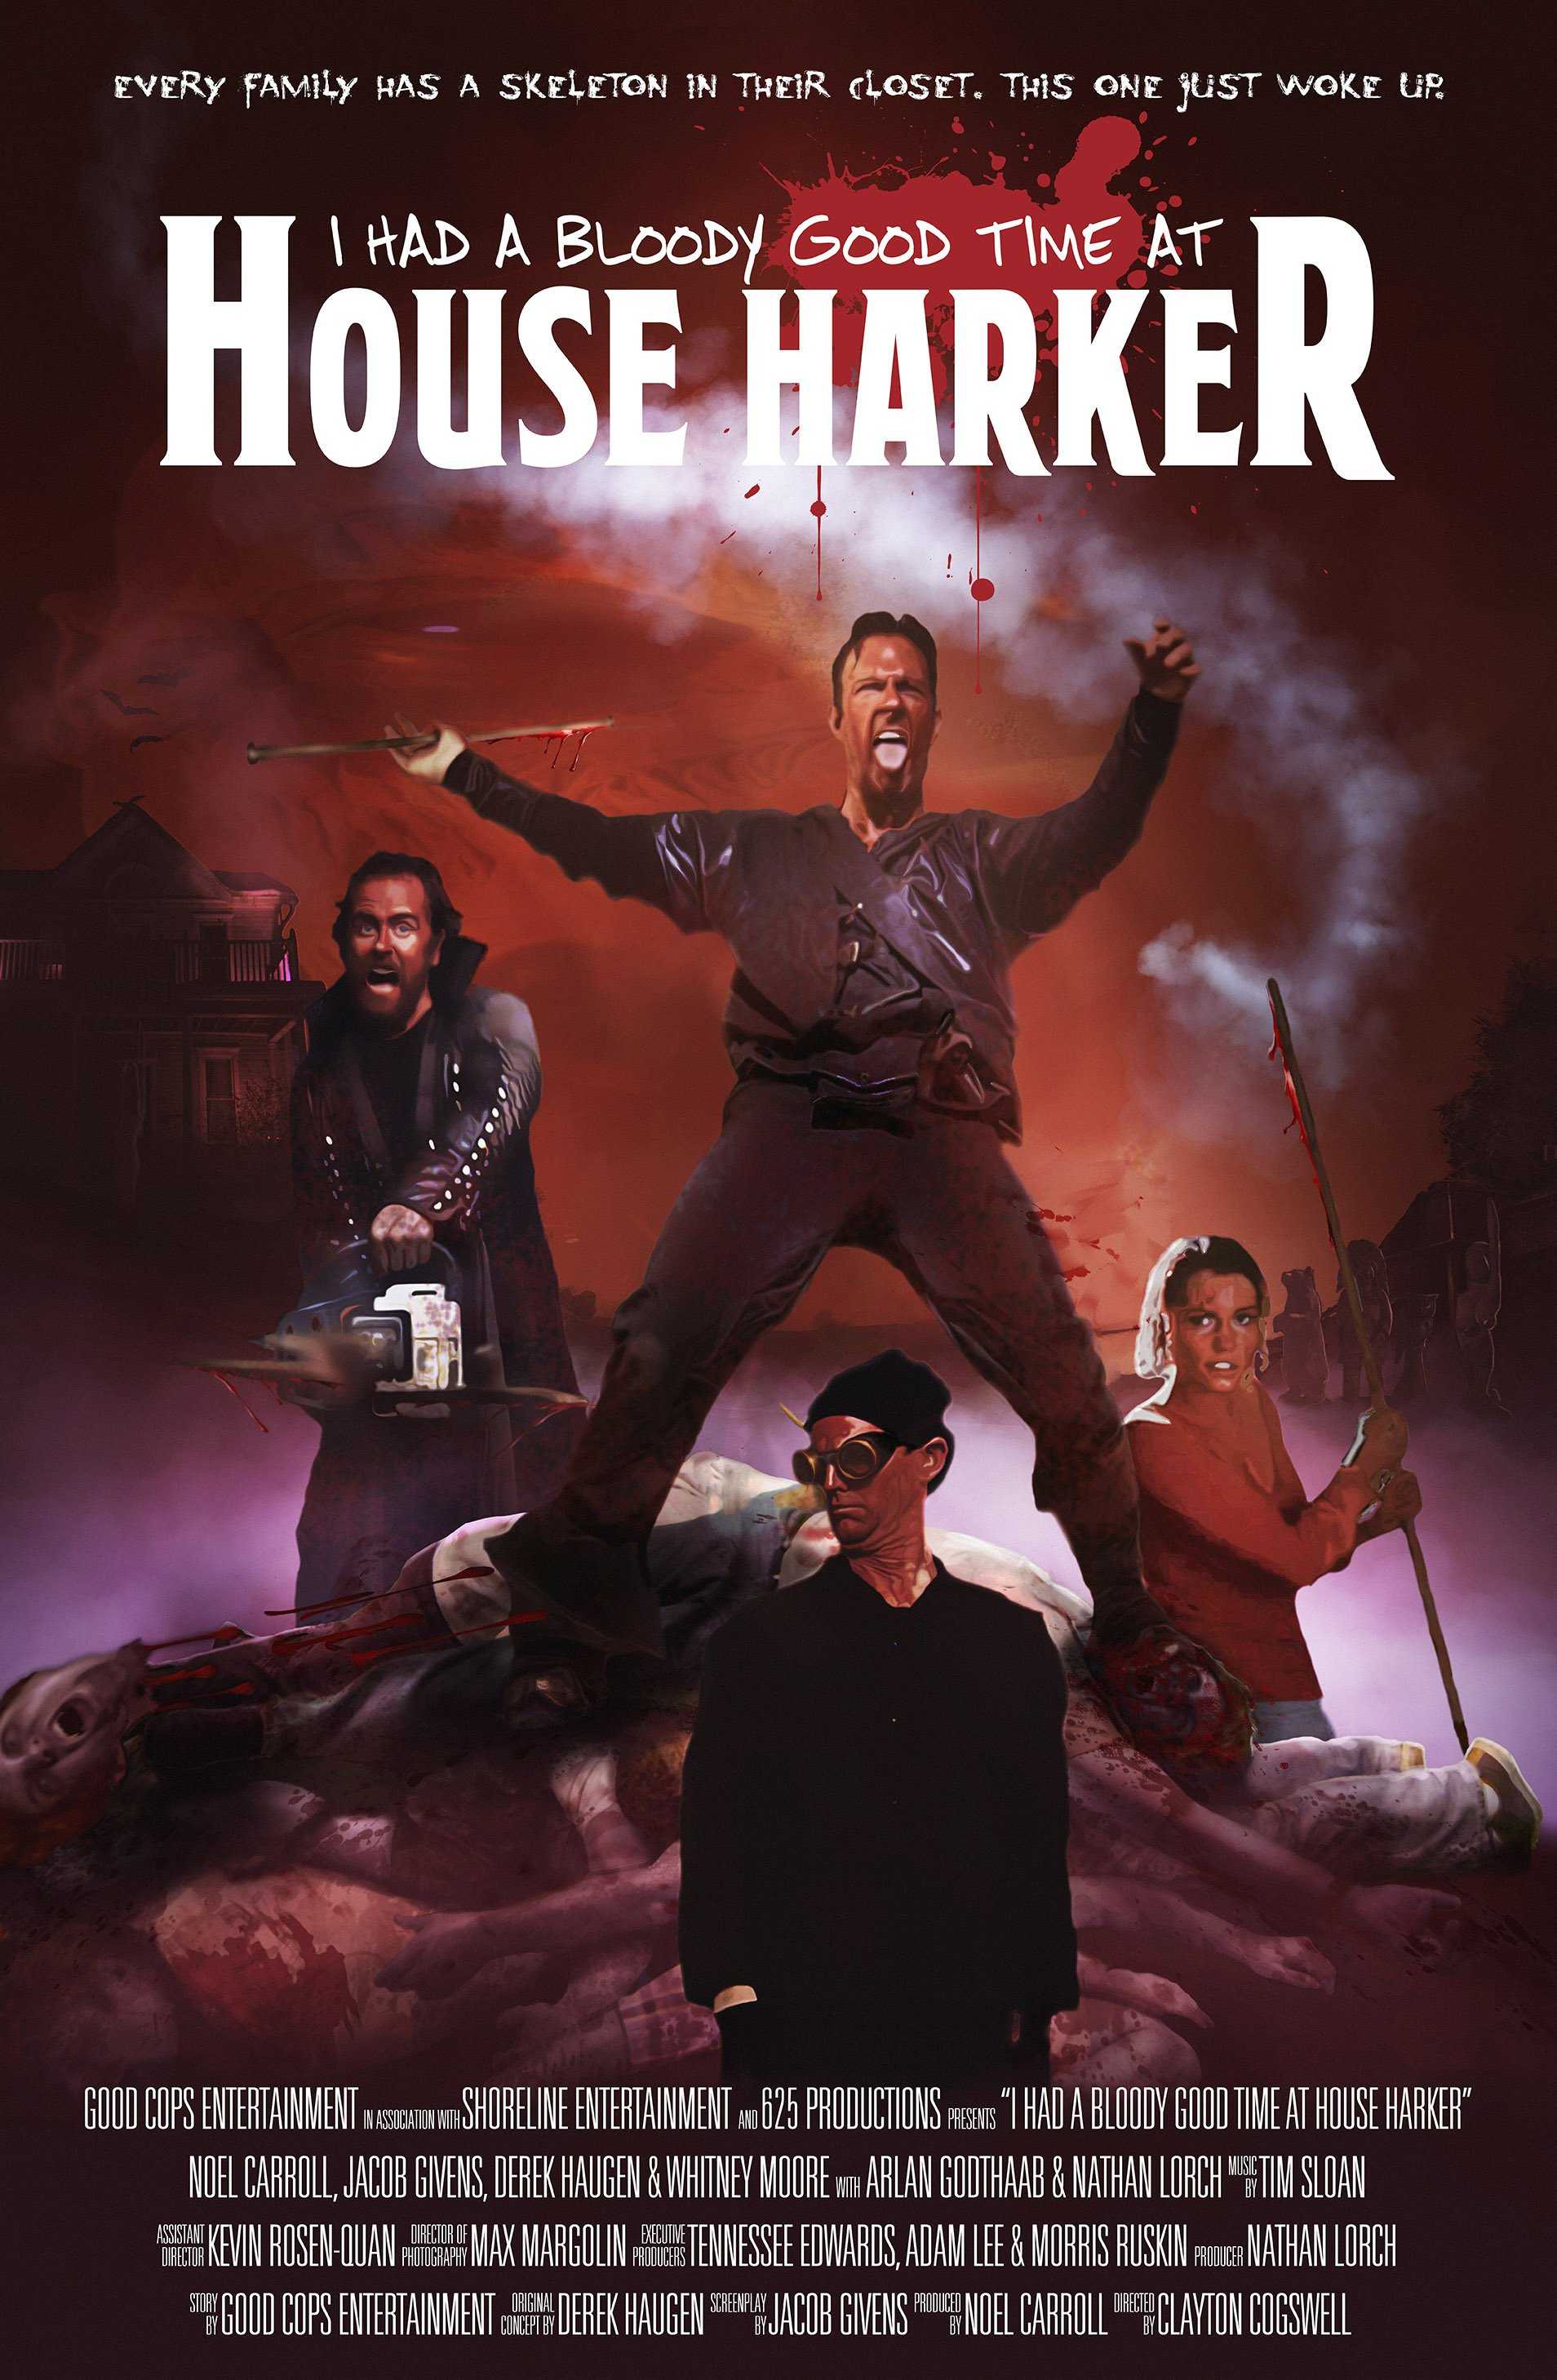 I Had a Bloody Good Time at House Harker hd on soap2day